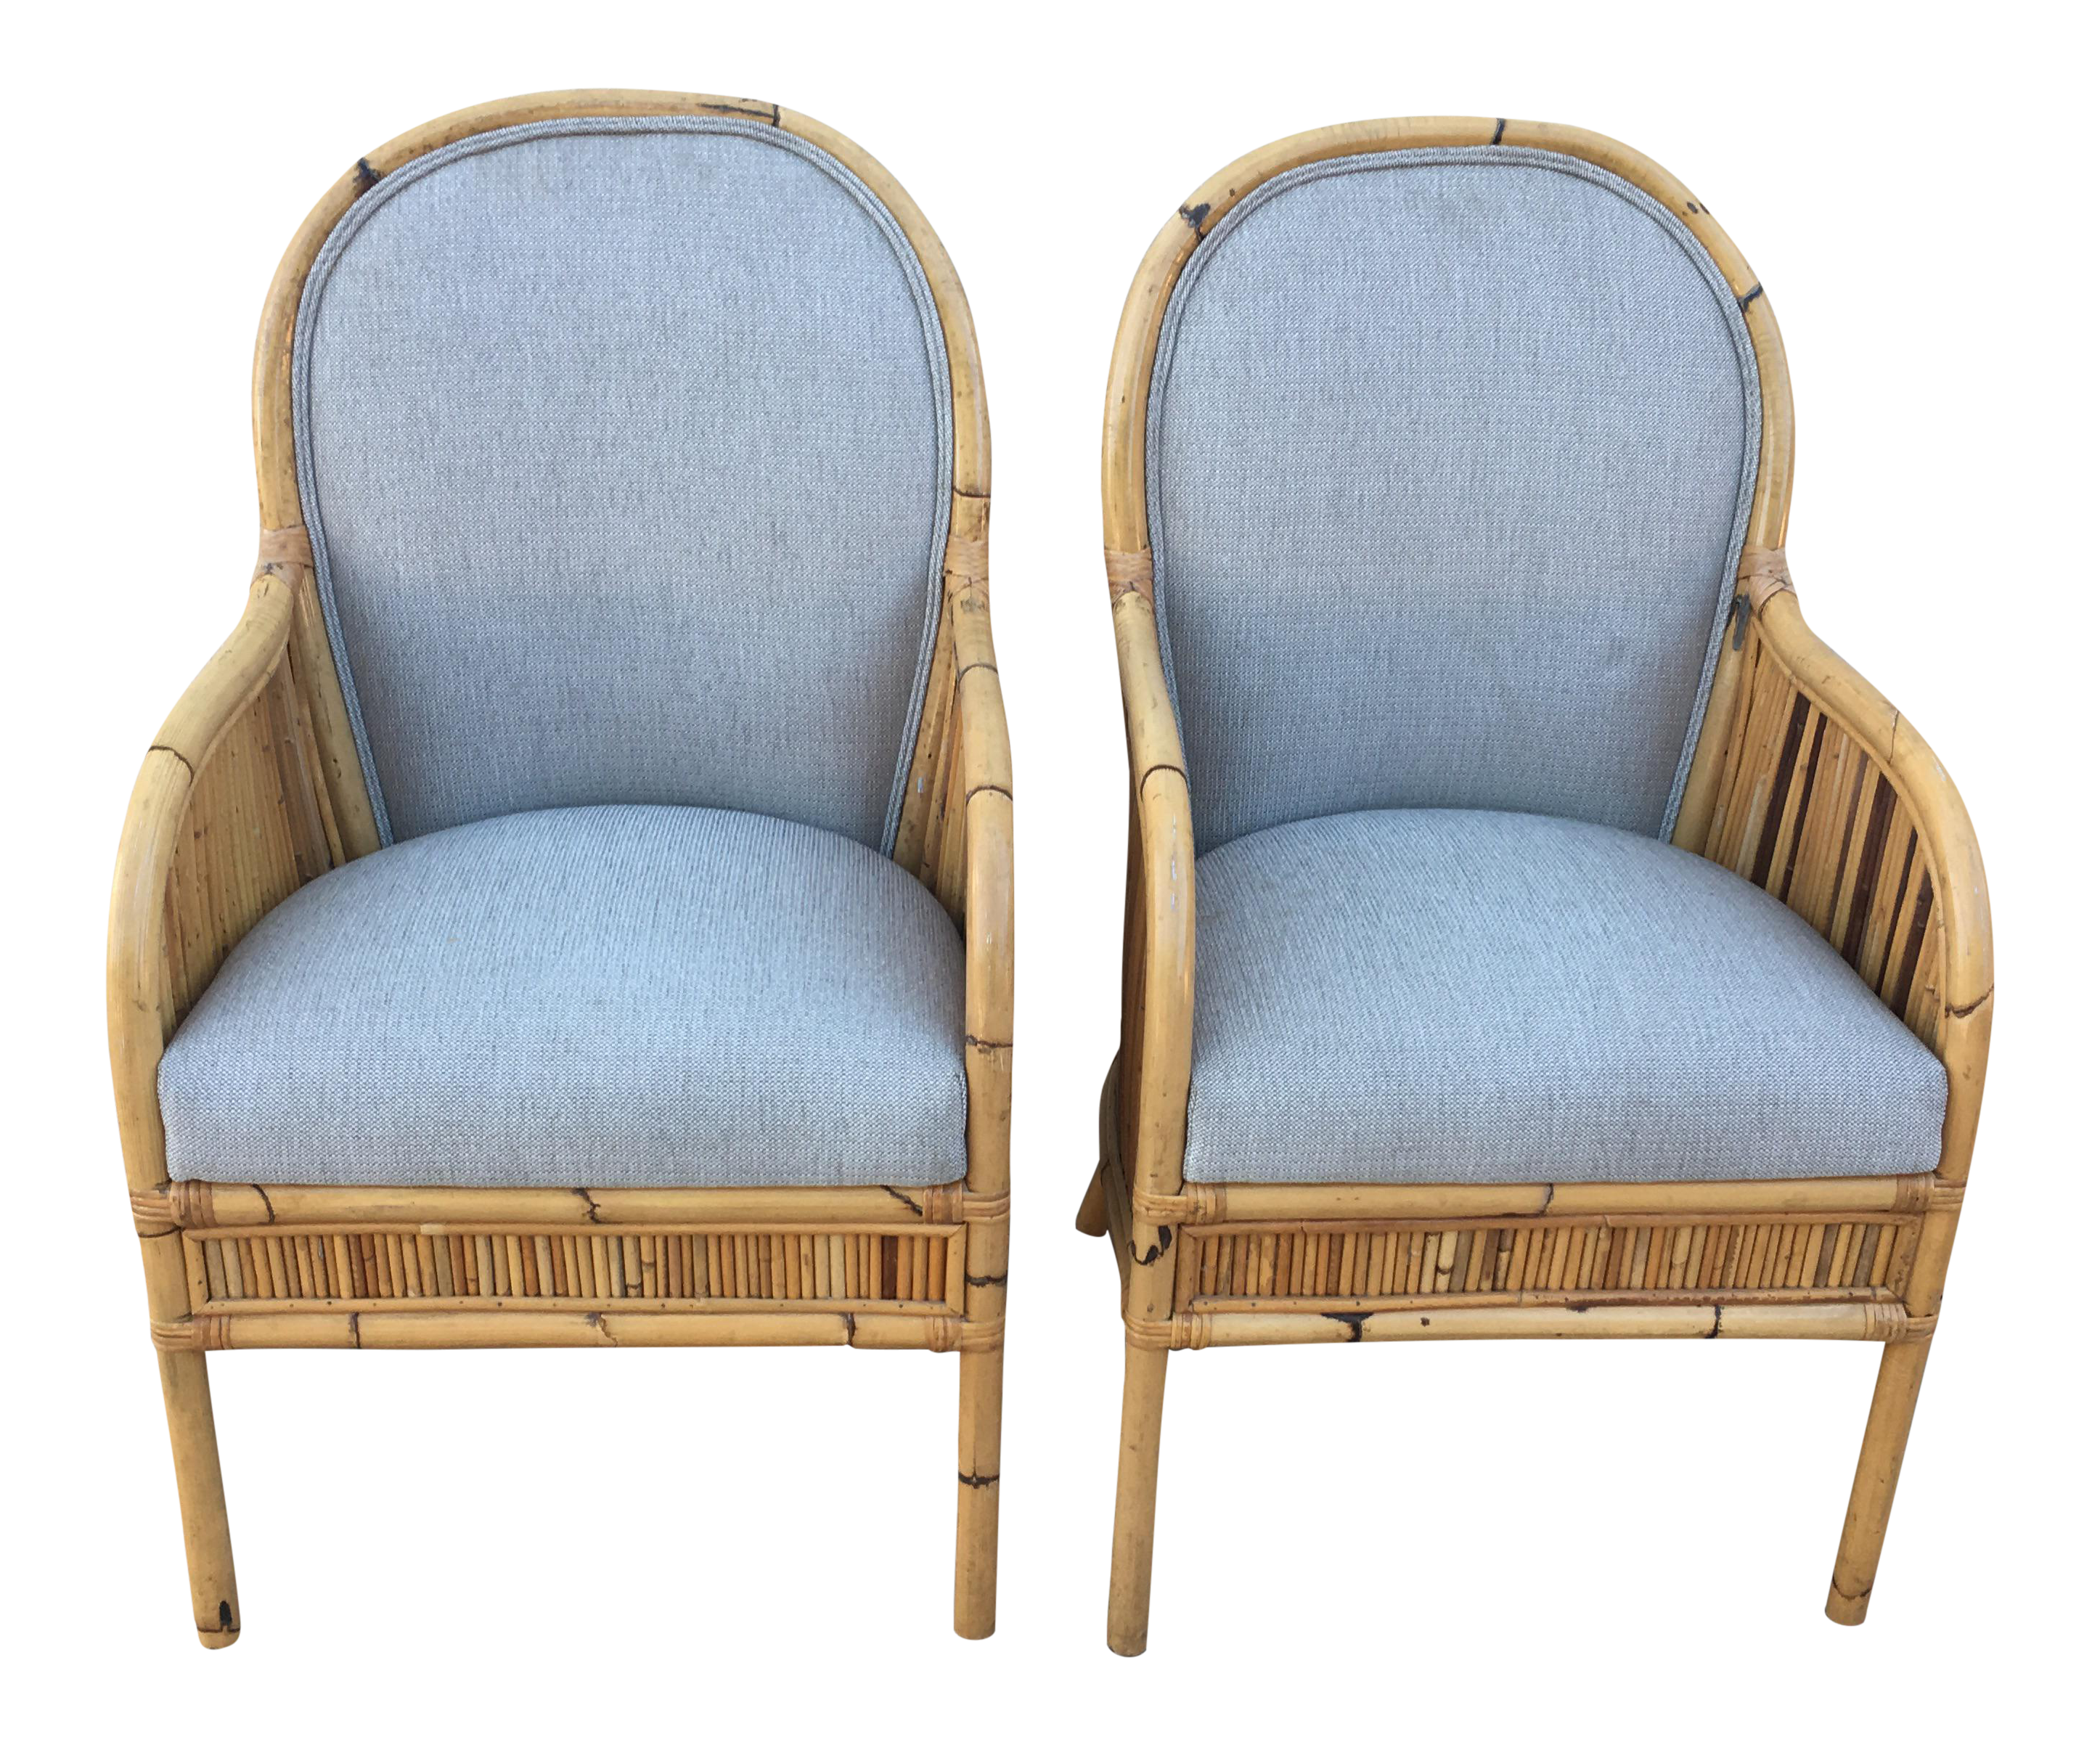 Bamboo arm chairs - Image Of Boho Henry Olko Bamboo Arm Chairs A Pair